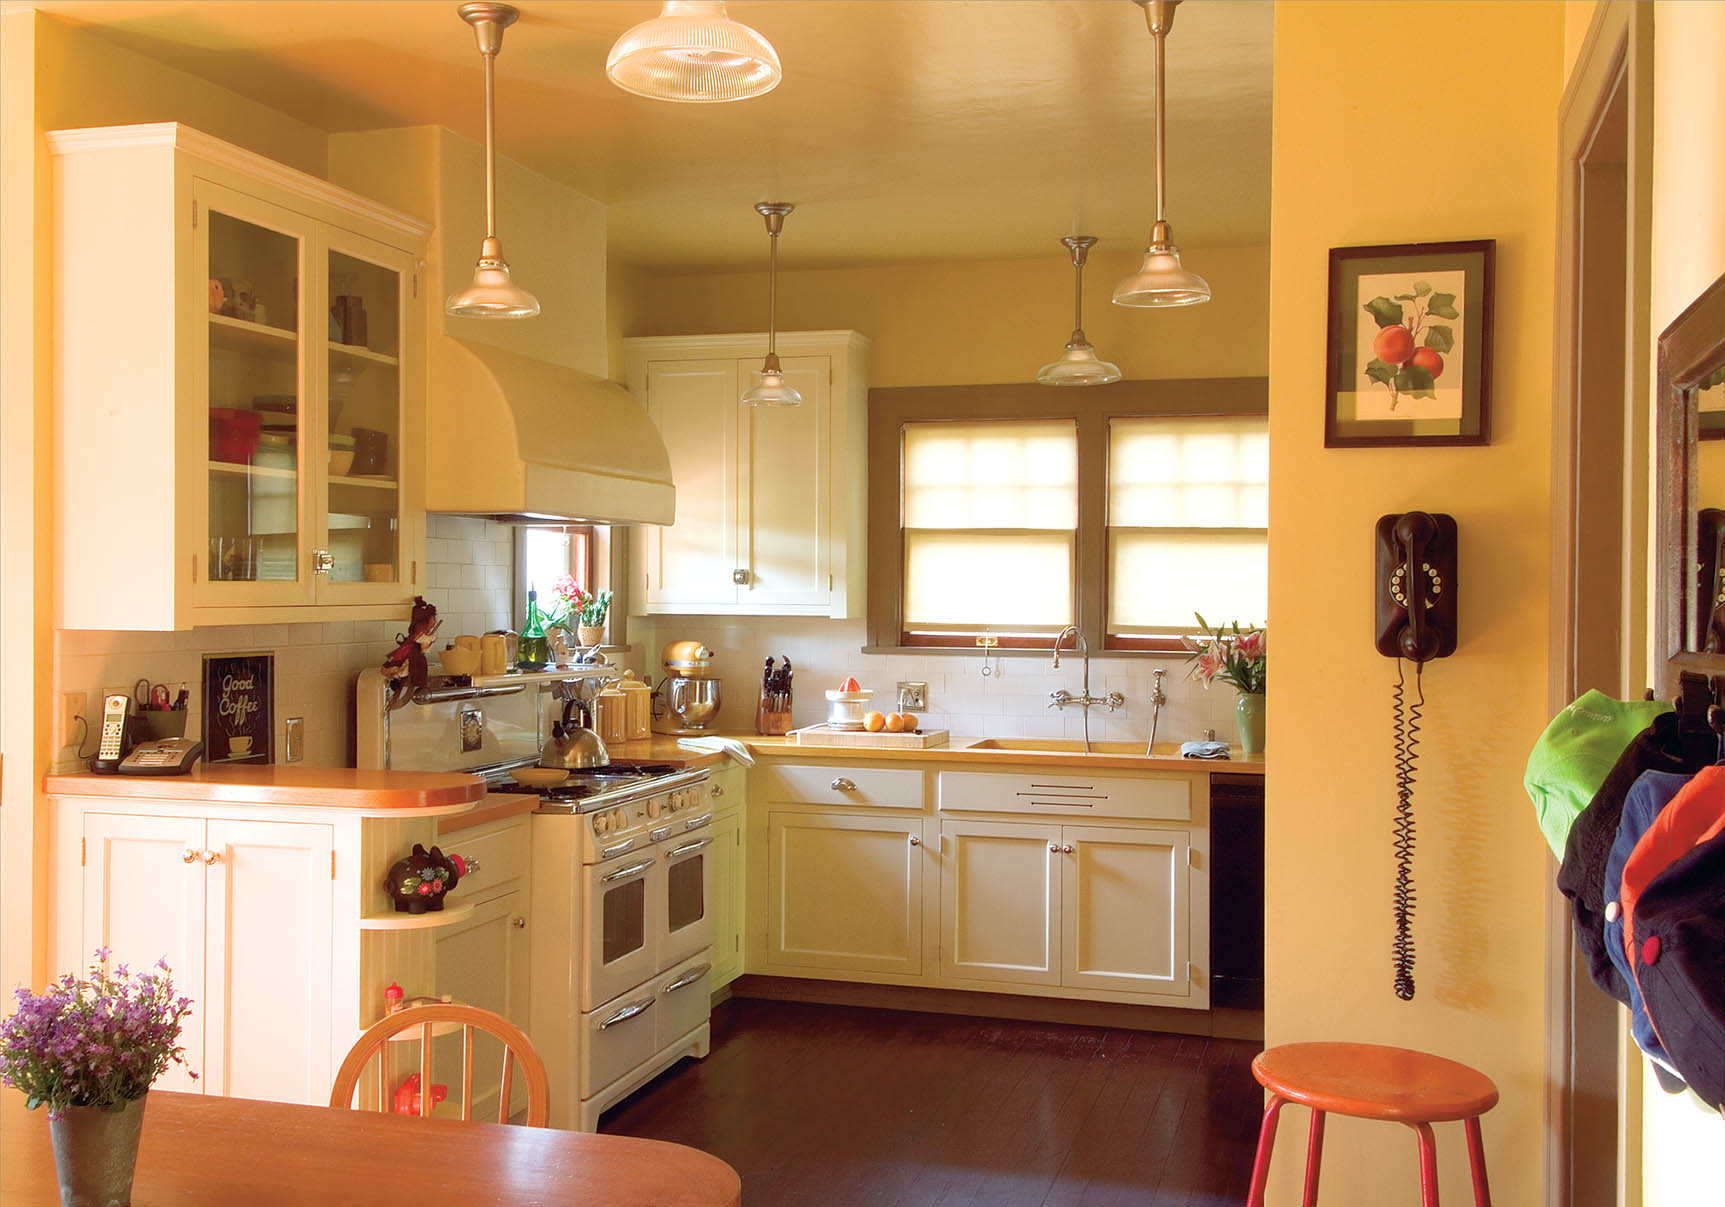 Bungalow Kitchens Changing With The Times American Bungalow Magazine